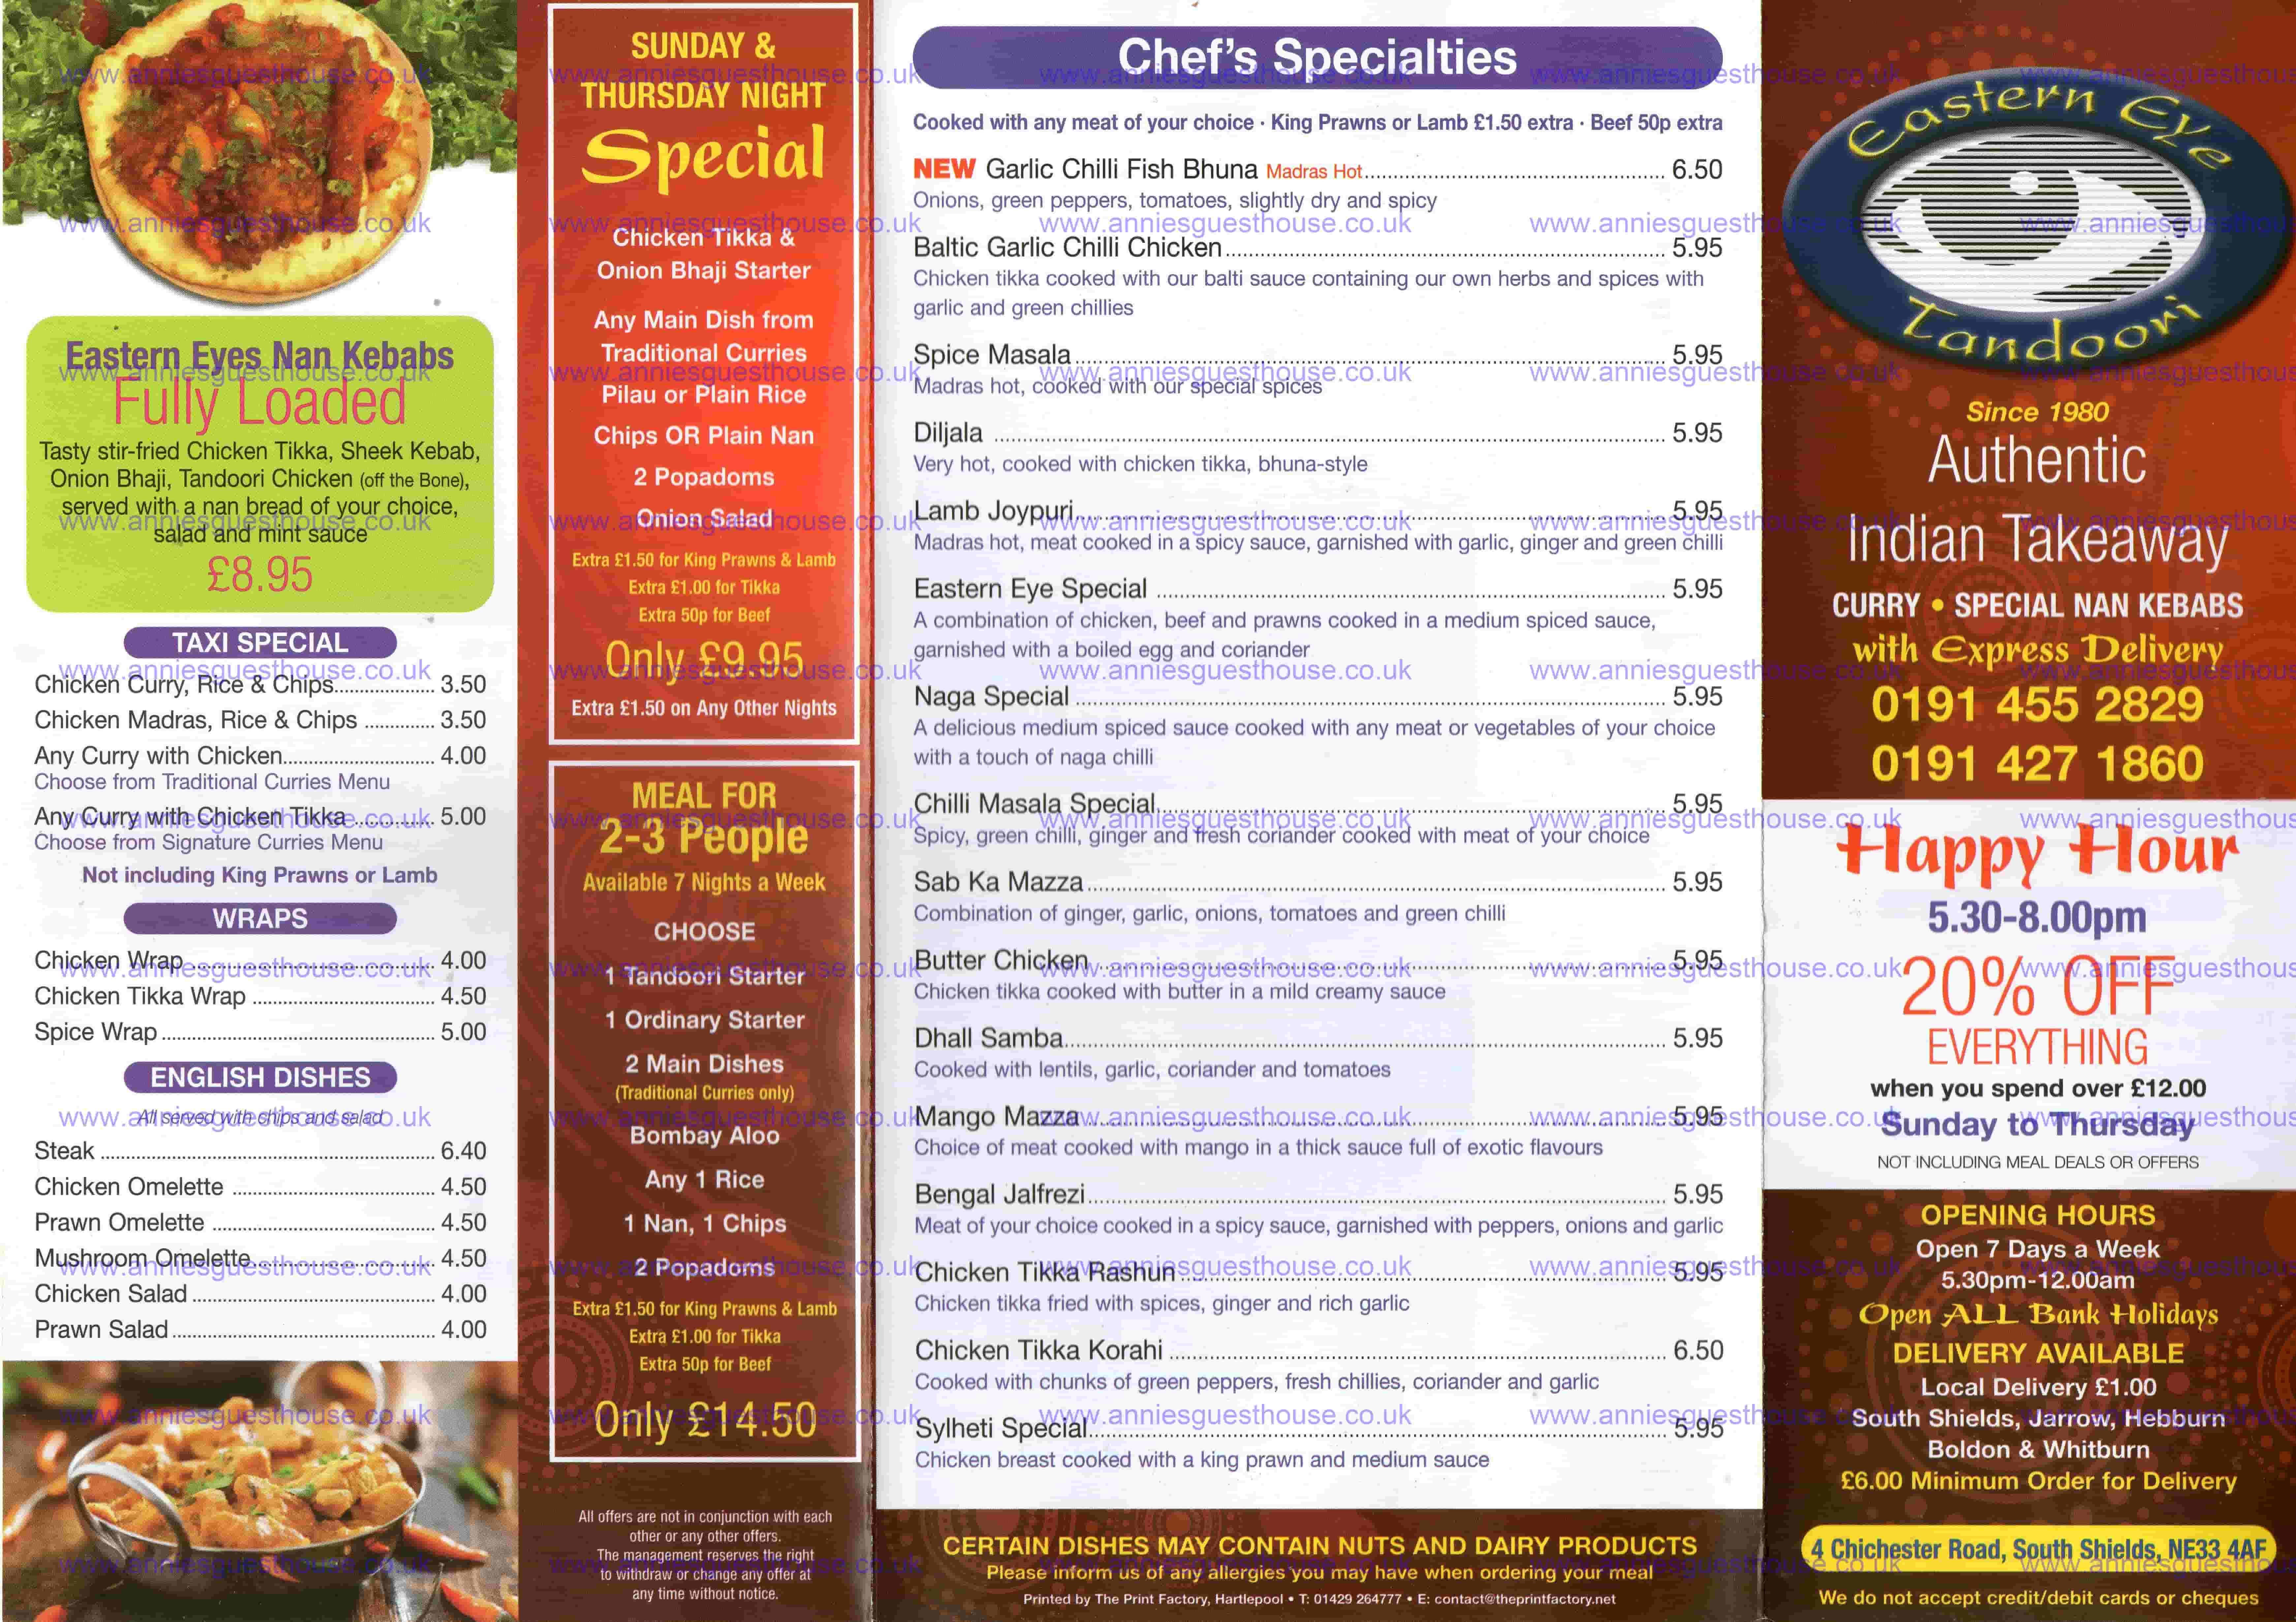 Eastern Eye Tandoori 4 Chichester Road South Shields NE33 4AF Menu 1